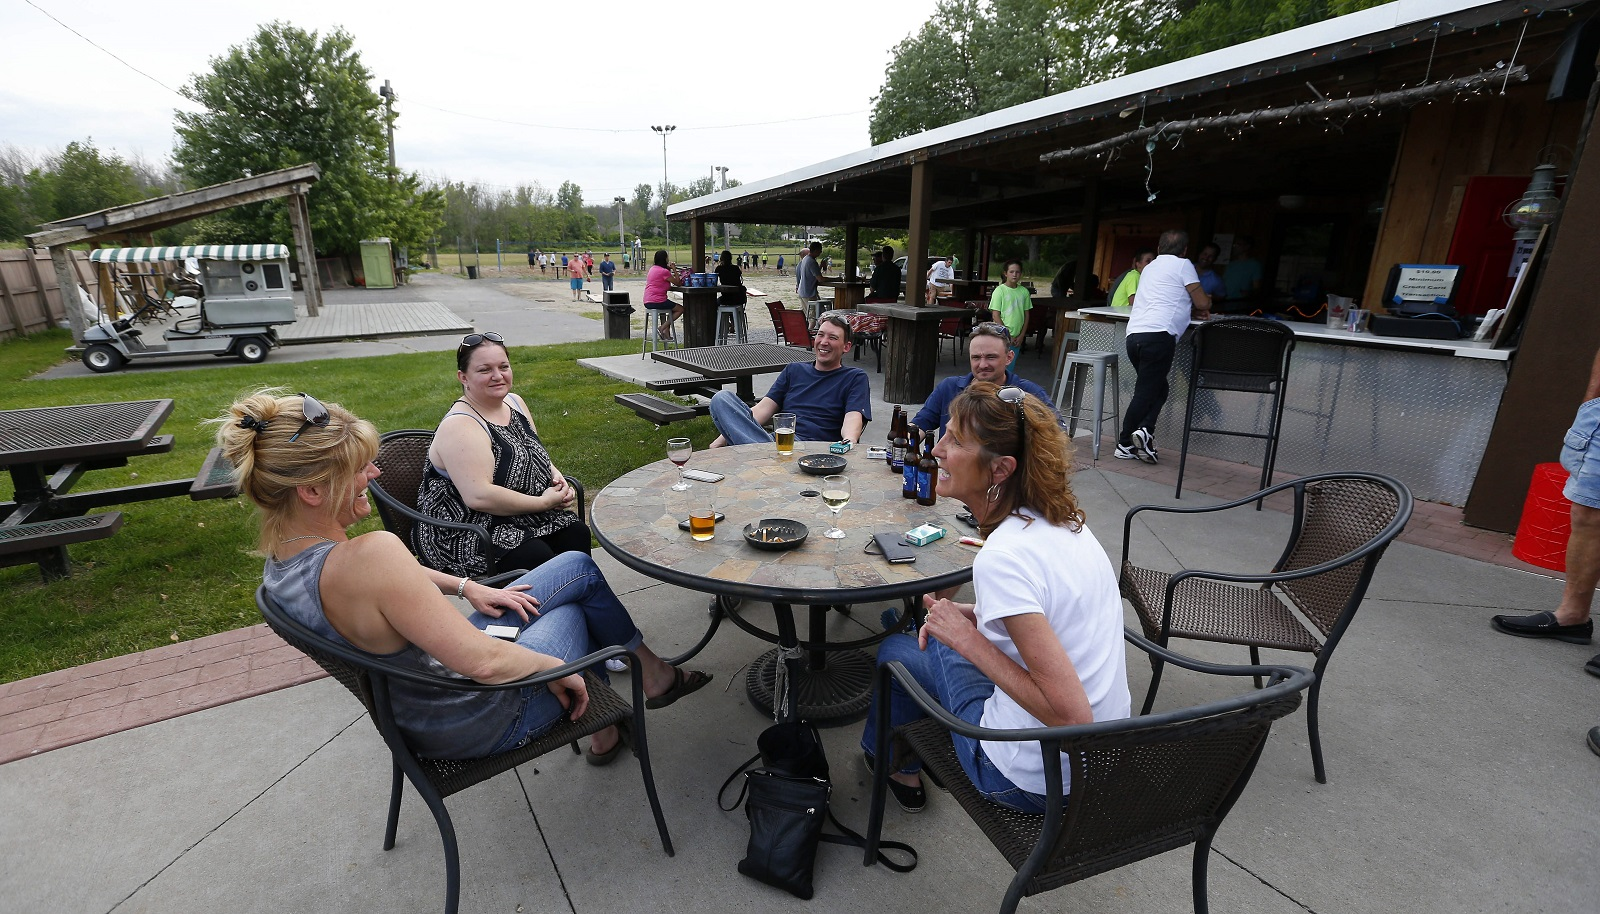 People enjoy the outdoor patio at the Angry Buffalo at the Rose Garden in Williamsville. (Mark Mulville/Buffalo News)